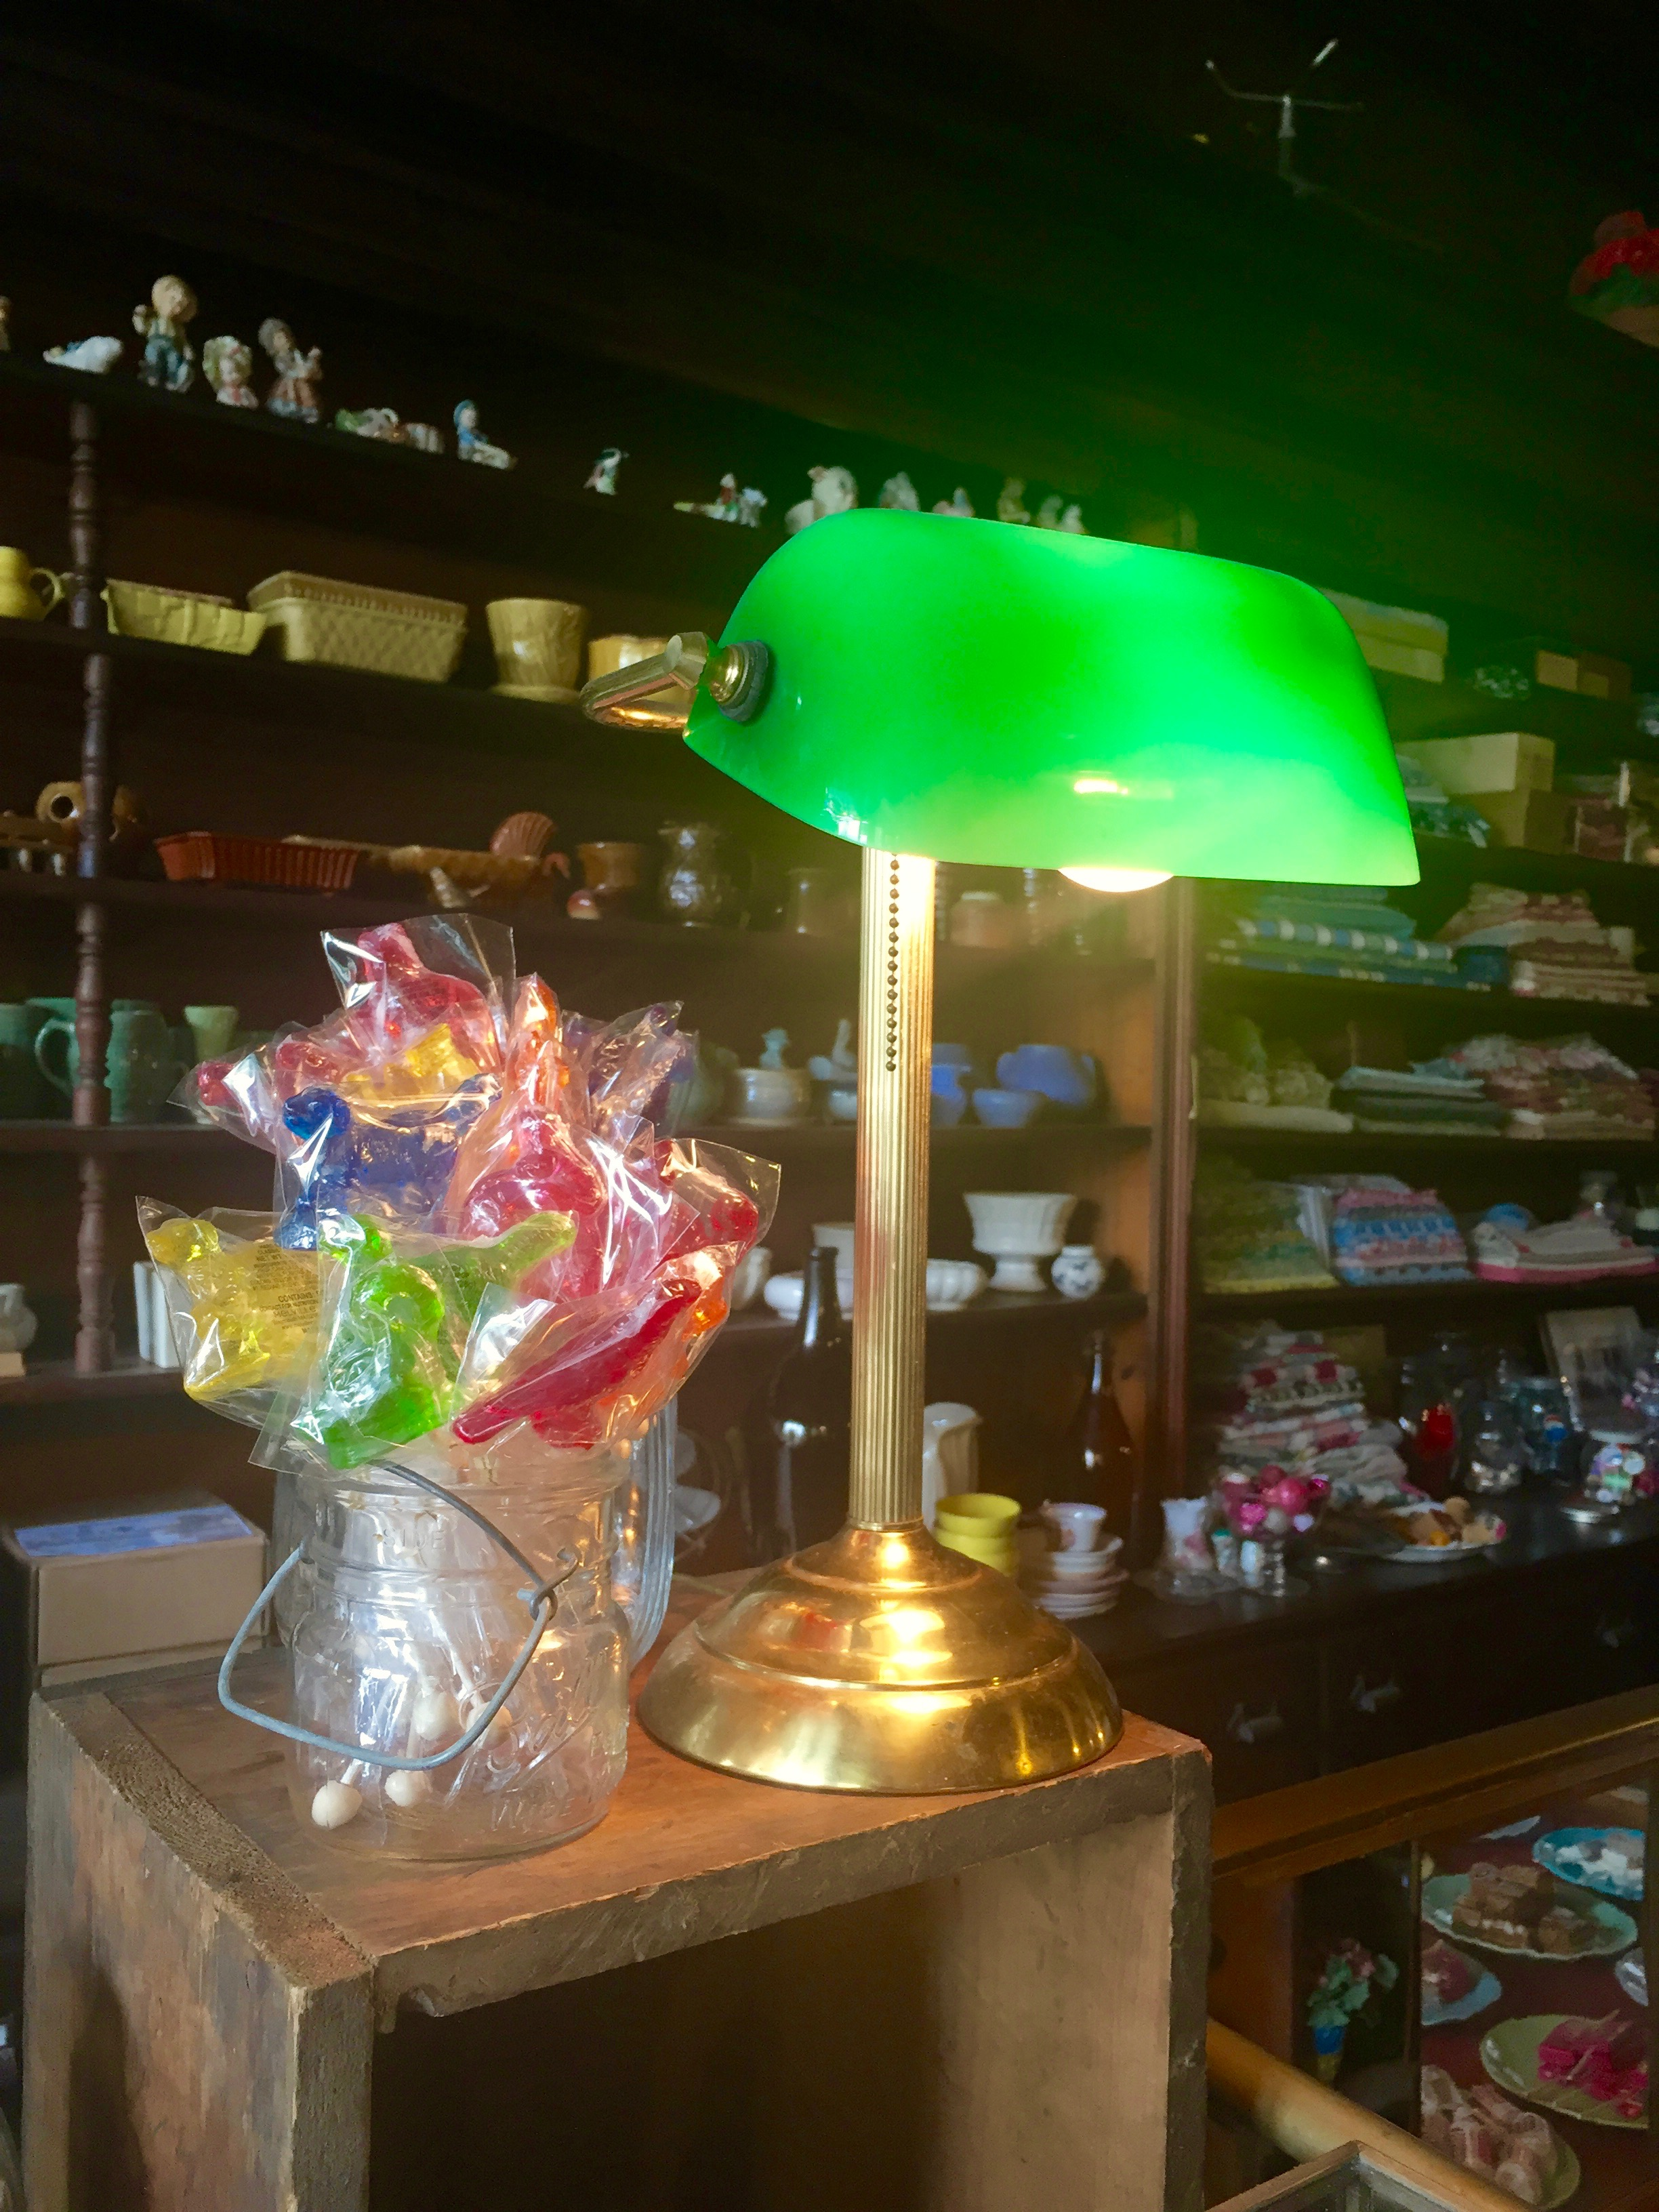 Hand-molded barley sugar lollipops, made by Melville Candy, glow under a banker's lamp.